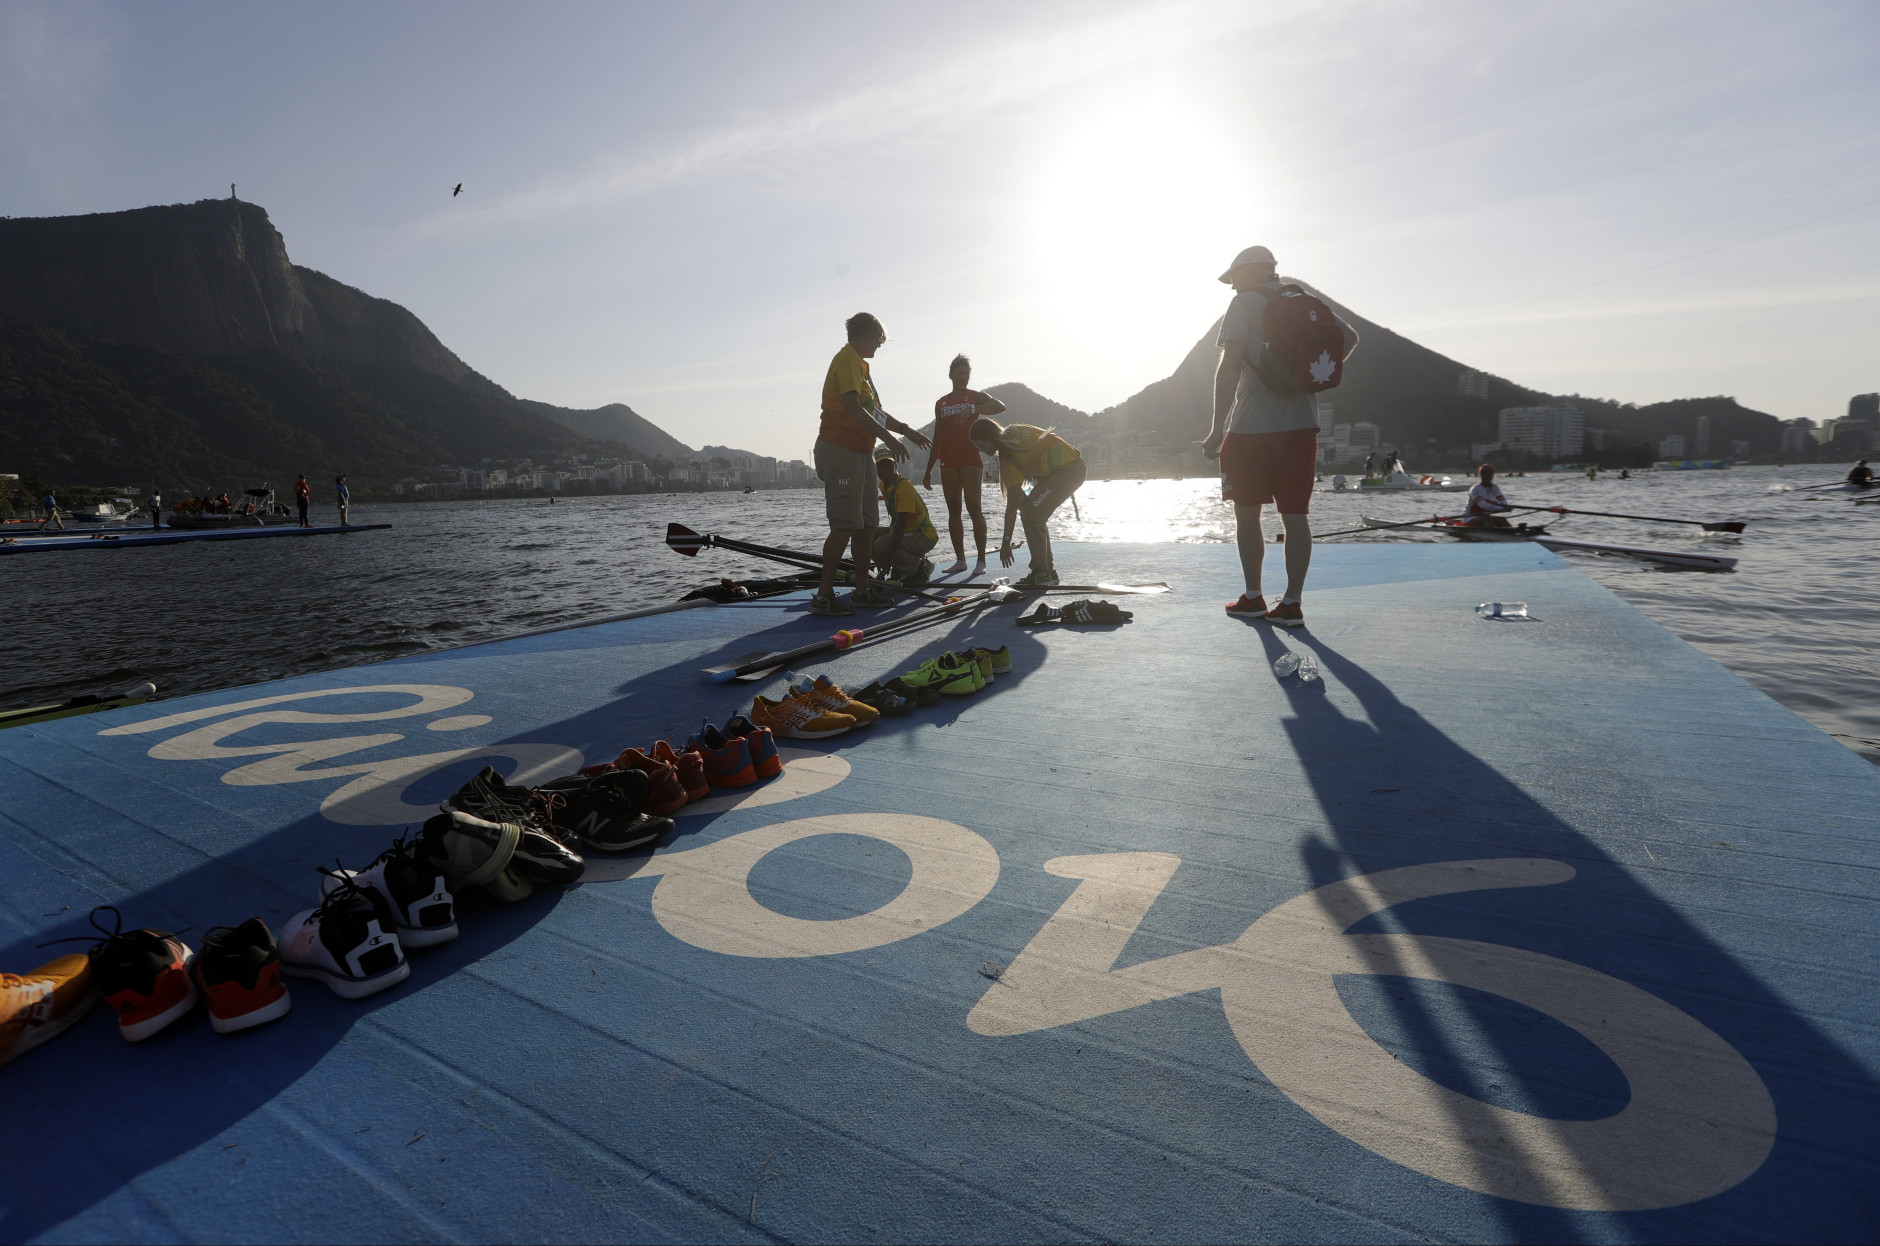 Canada rowers return to shore after practice during the 2016 Summer Olympics in Rio de Janeiro, Brazil, Sunday, Aug. 7, 2016. (AP Photo/Luca Bruno)